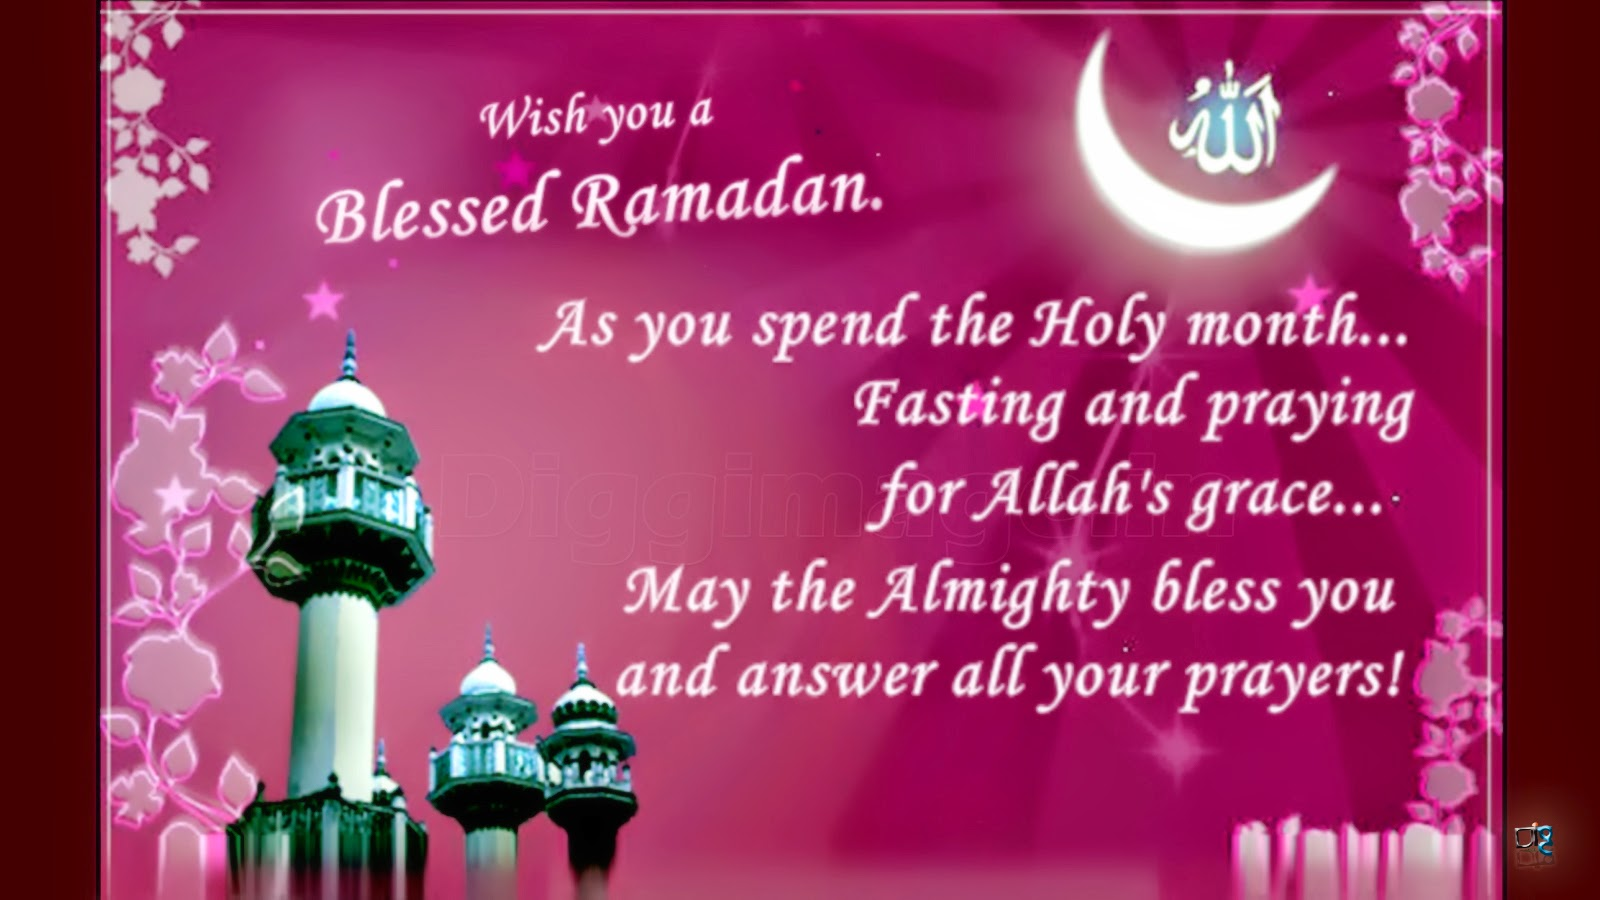 essay on ramadan ramadan around the world newsweek middle east  essay on ramadan blessings blessing of ramadan essay kidakitap com best wishes messages related gcse hajj